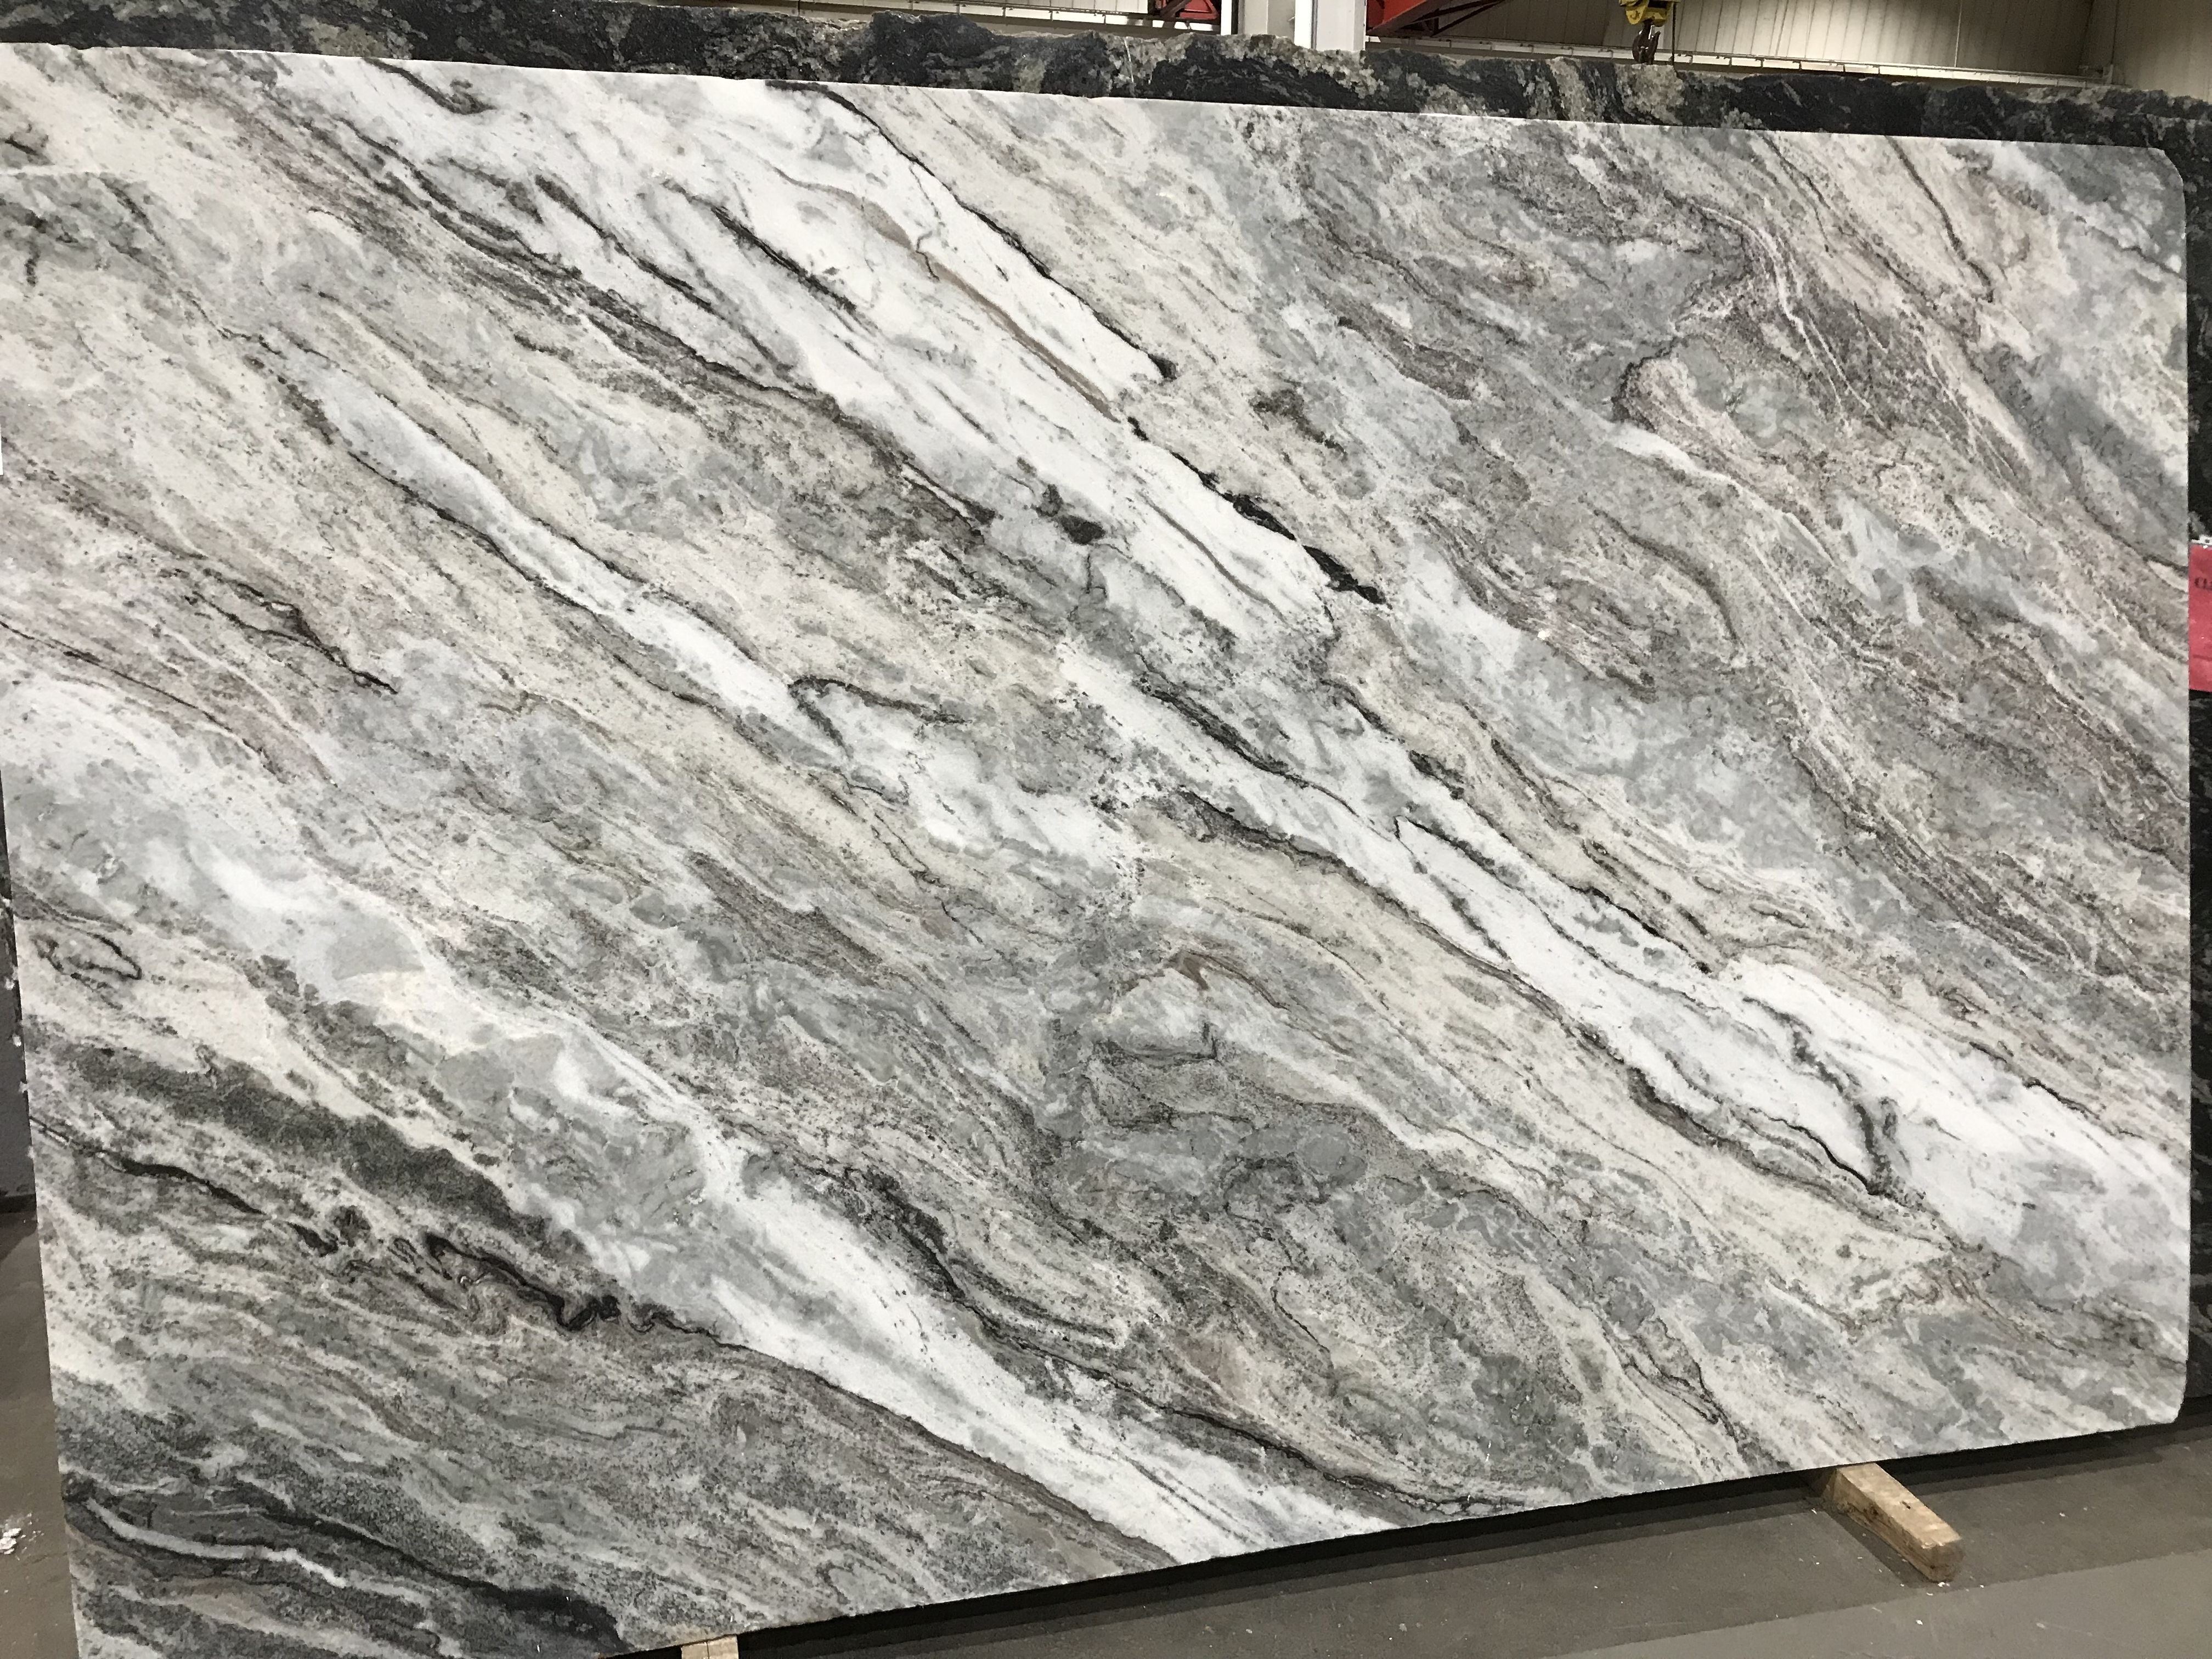 This Is One Of Our Quartzite Slabs They All Look Very Similar To Each Other Quartzite Slab Wood